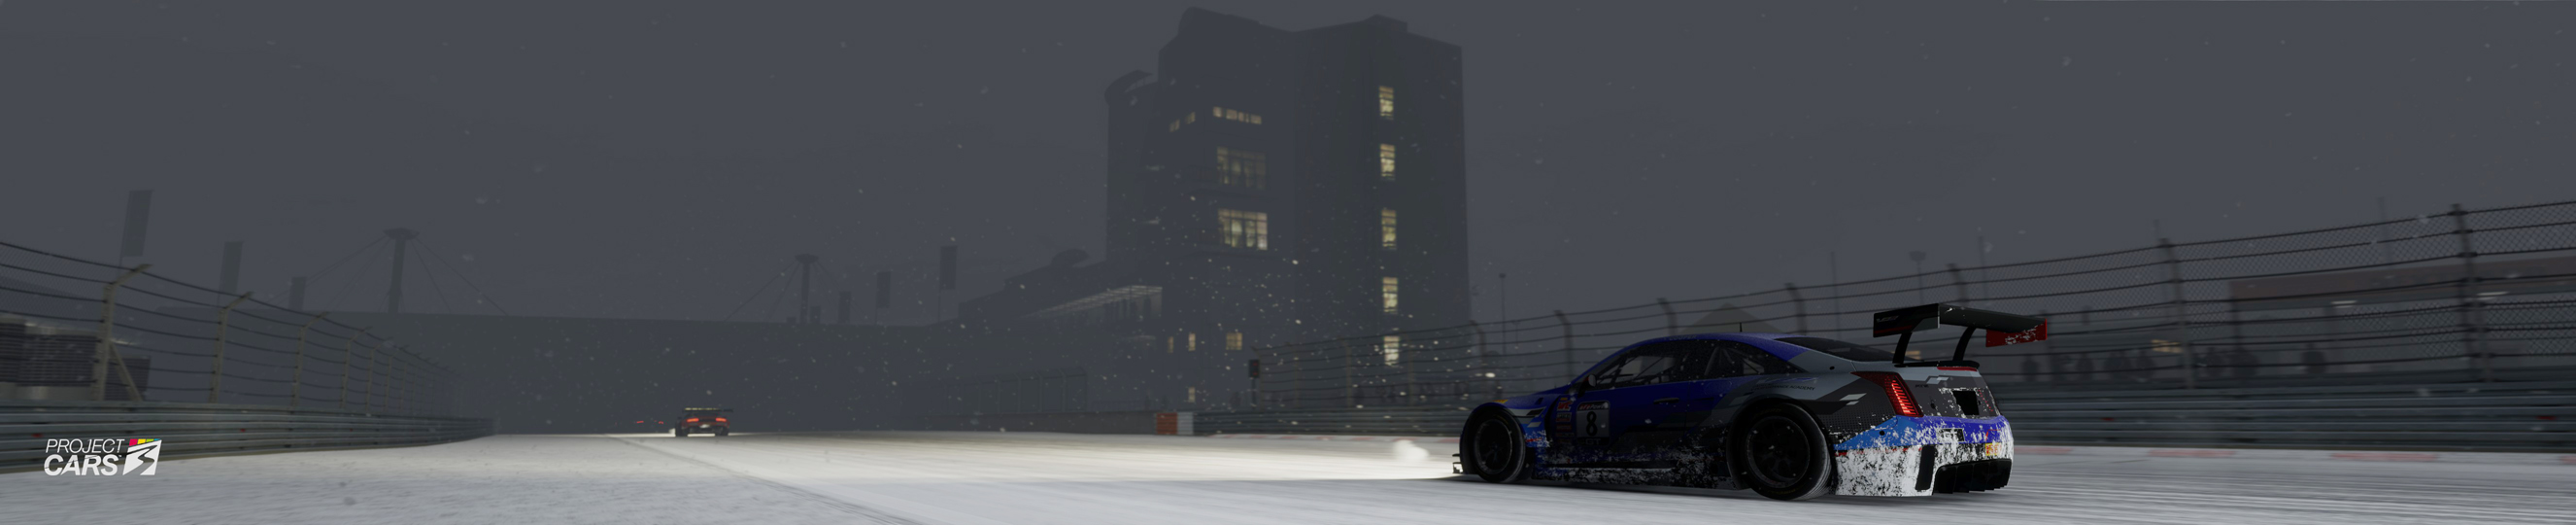 6 PROJECT CARS GT3 at NORDS Snow crop copy.jpg